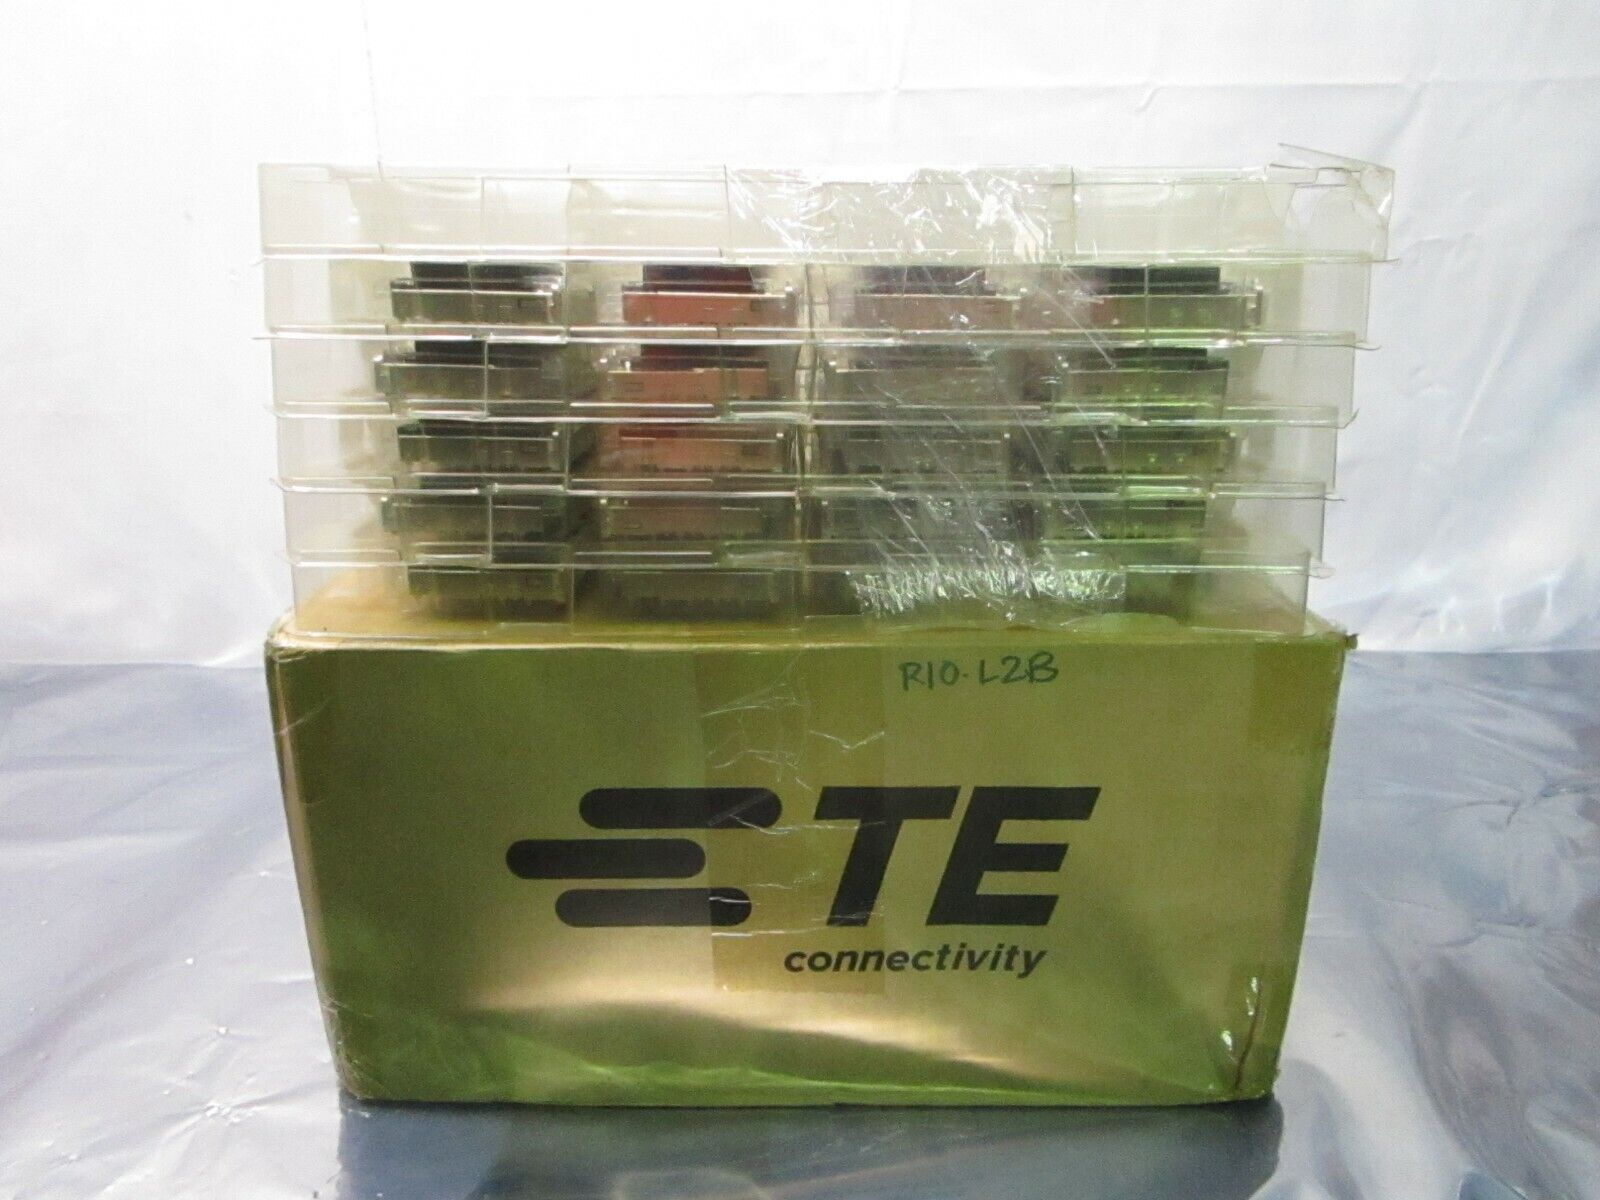 1 Lot of 40 TE connectivity AMP Brand 2170551-1 1X6 CAGE ASSEMBLY, 102433